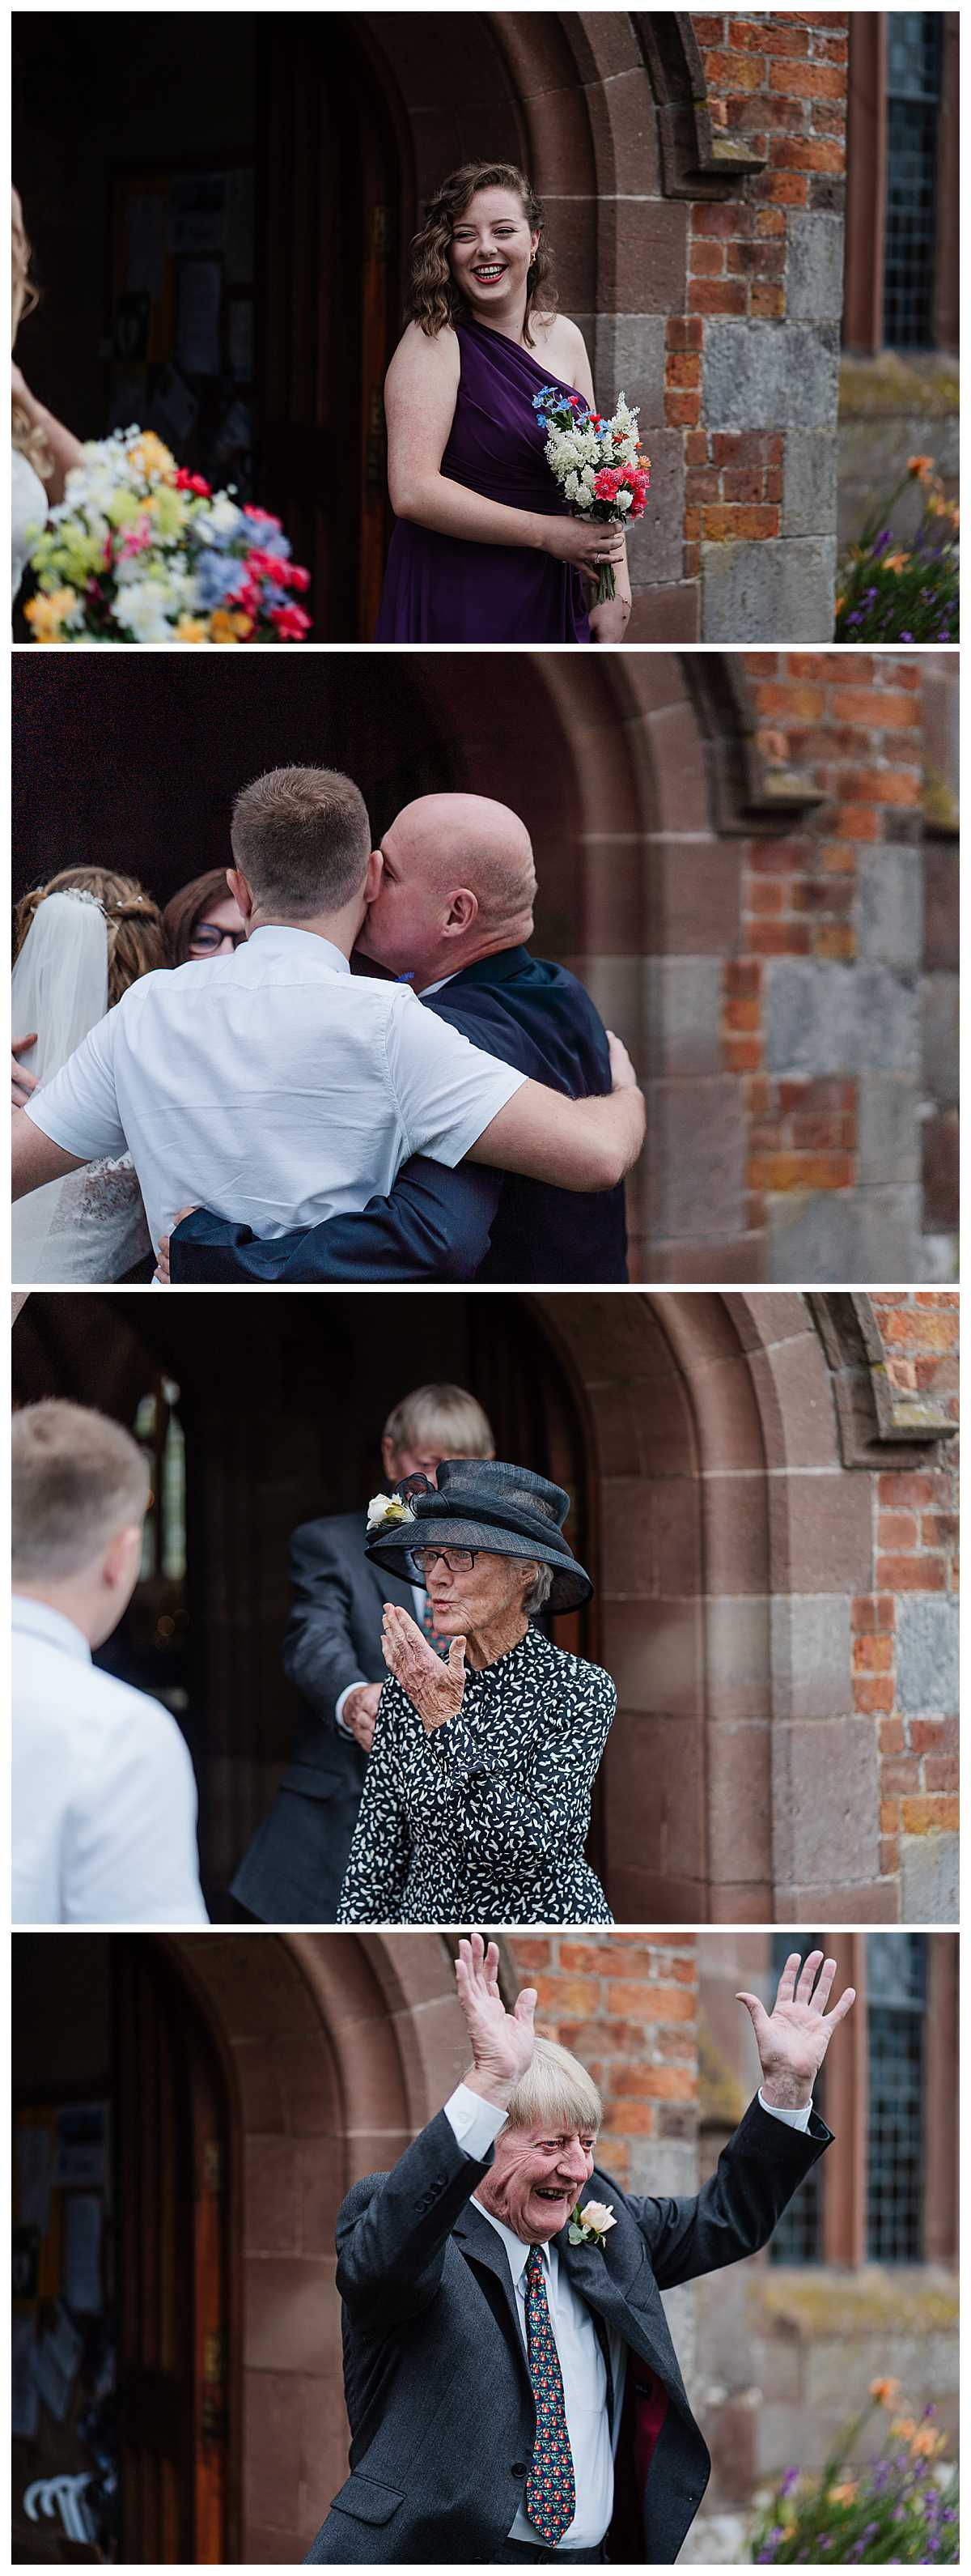 wedding guests waving and blowing kisses to the happy couple as they come out of church, social distancing